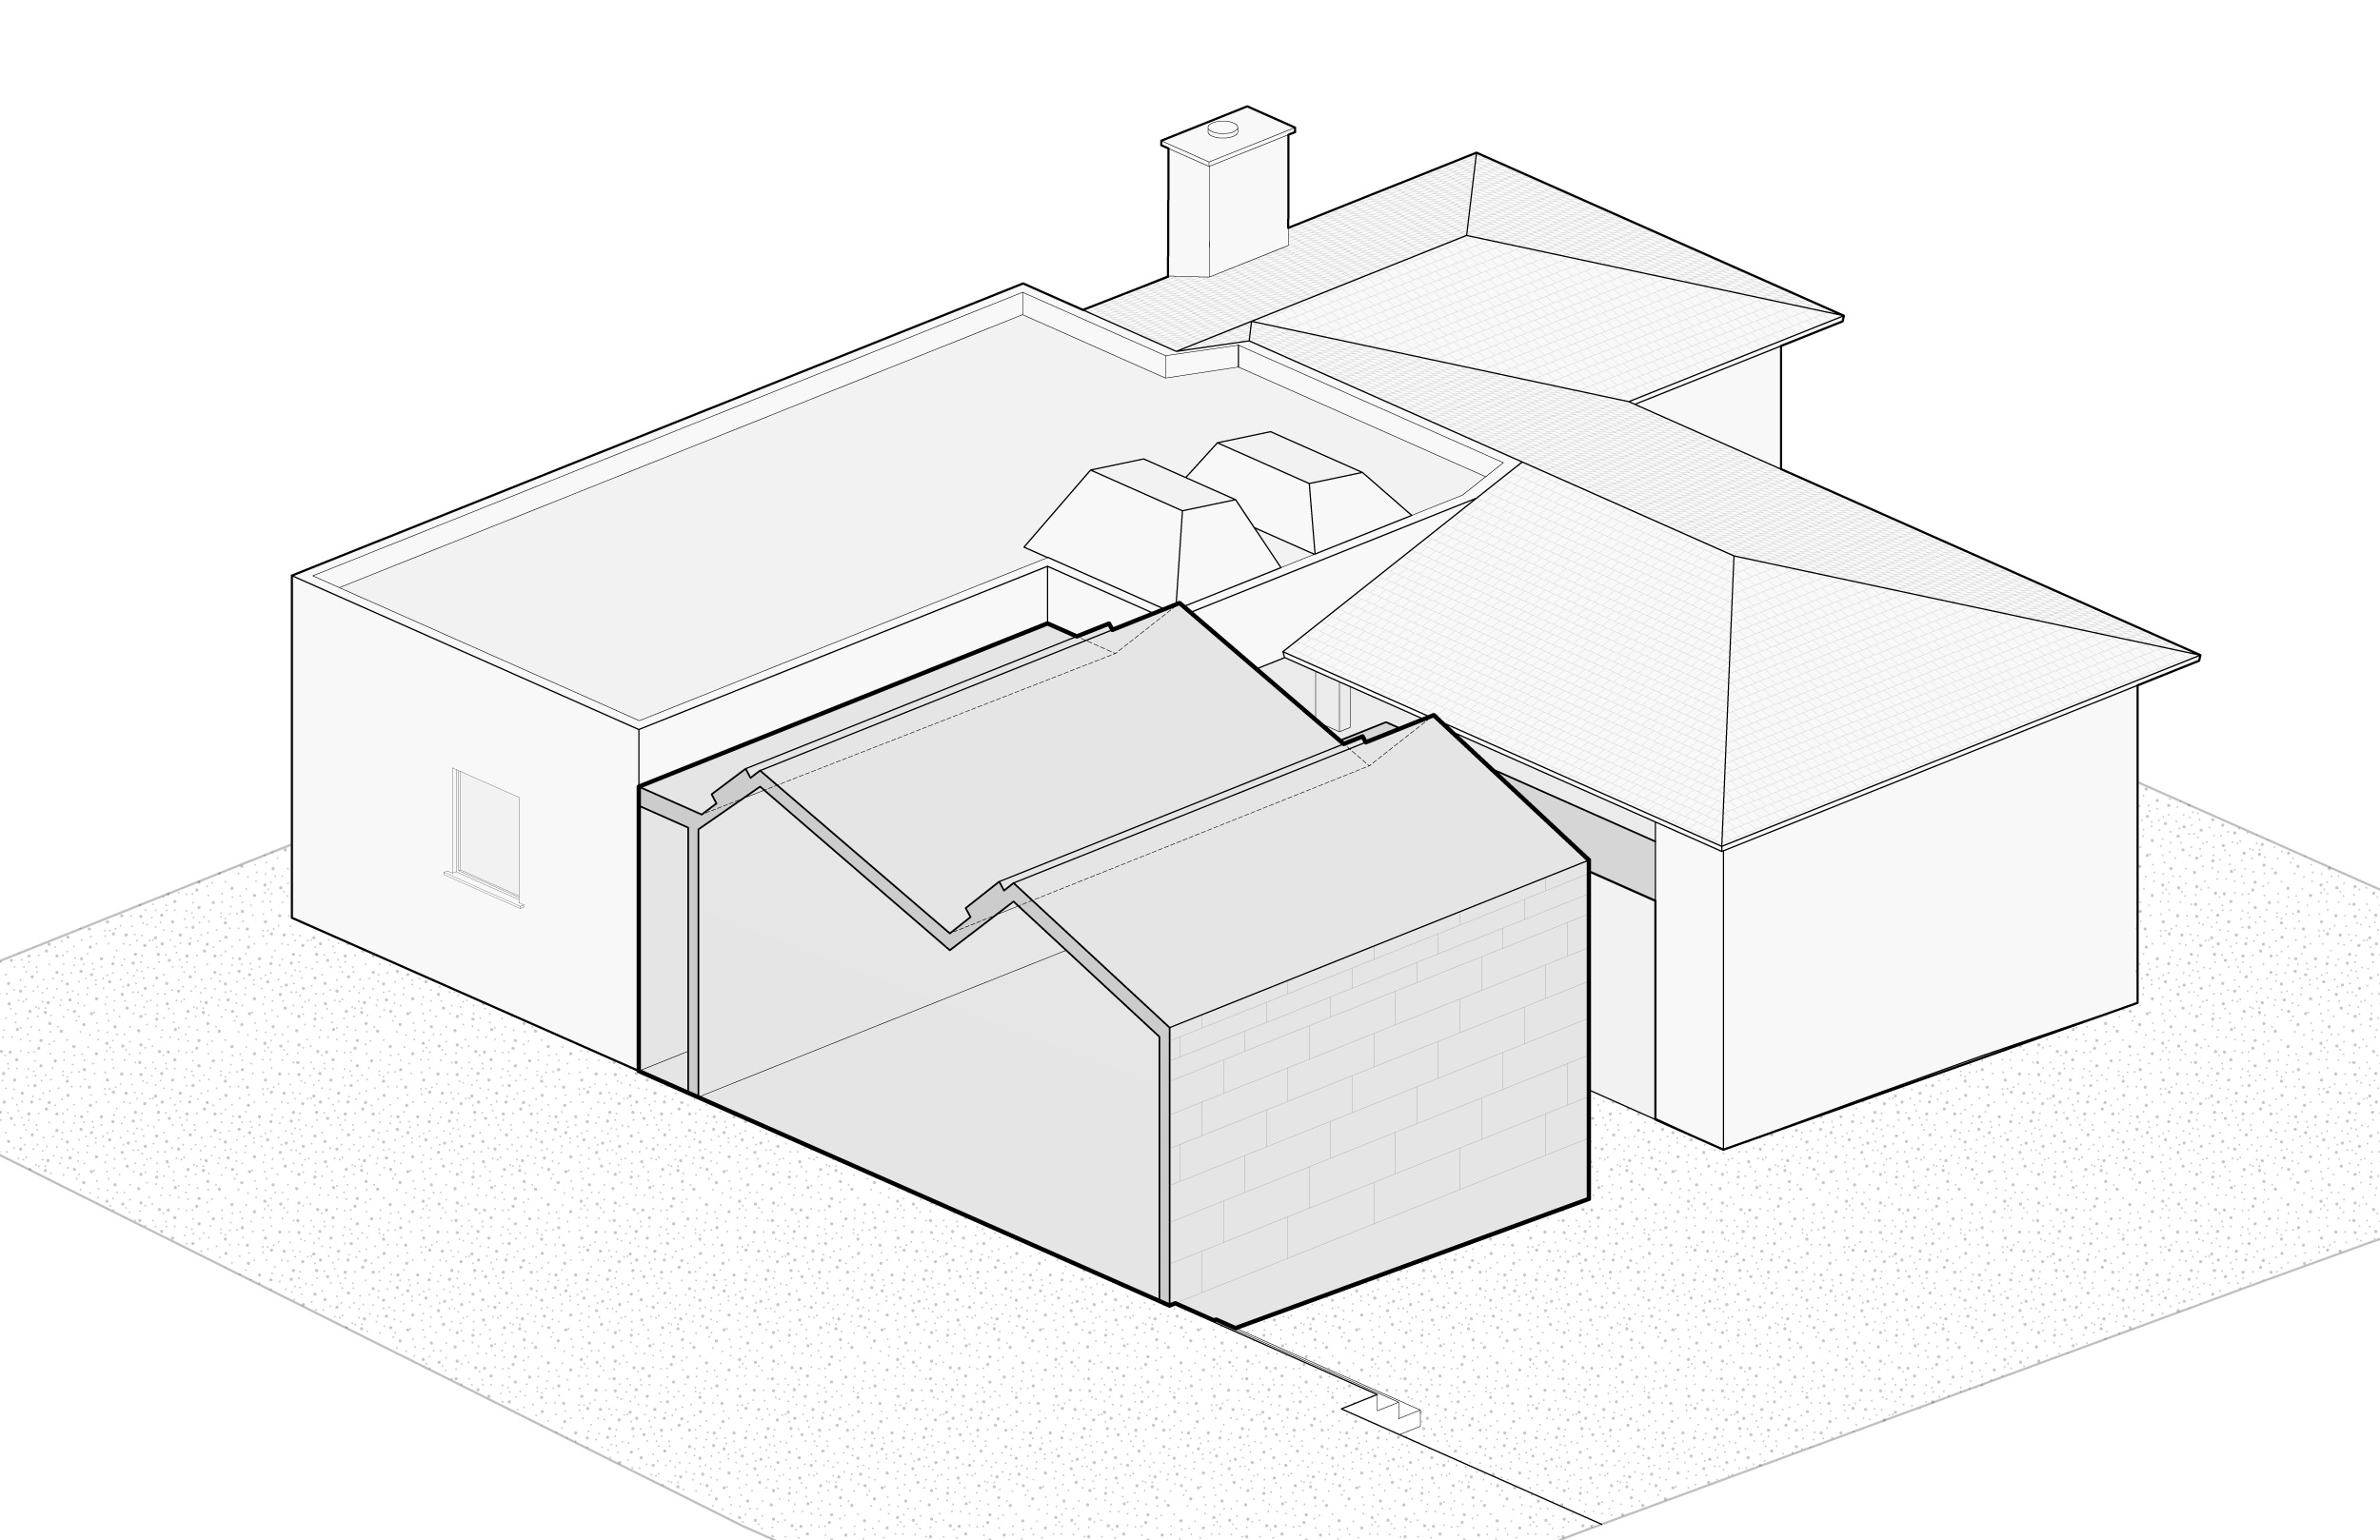 Egan-House_Diagram_03.jpg